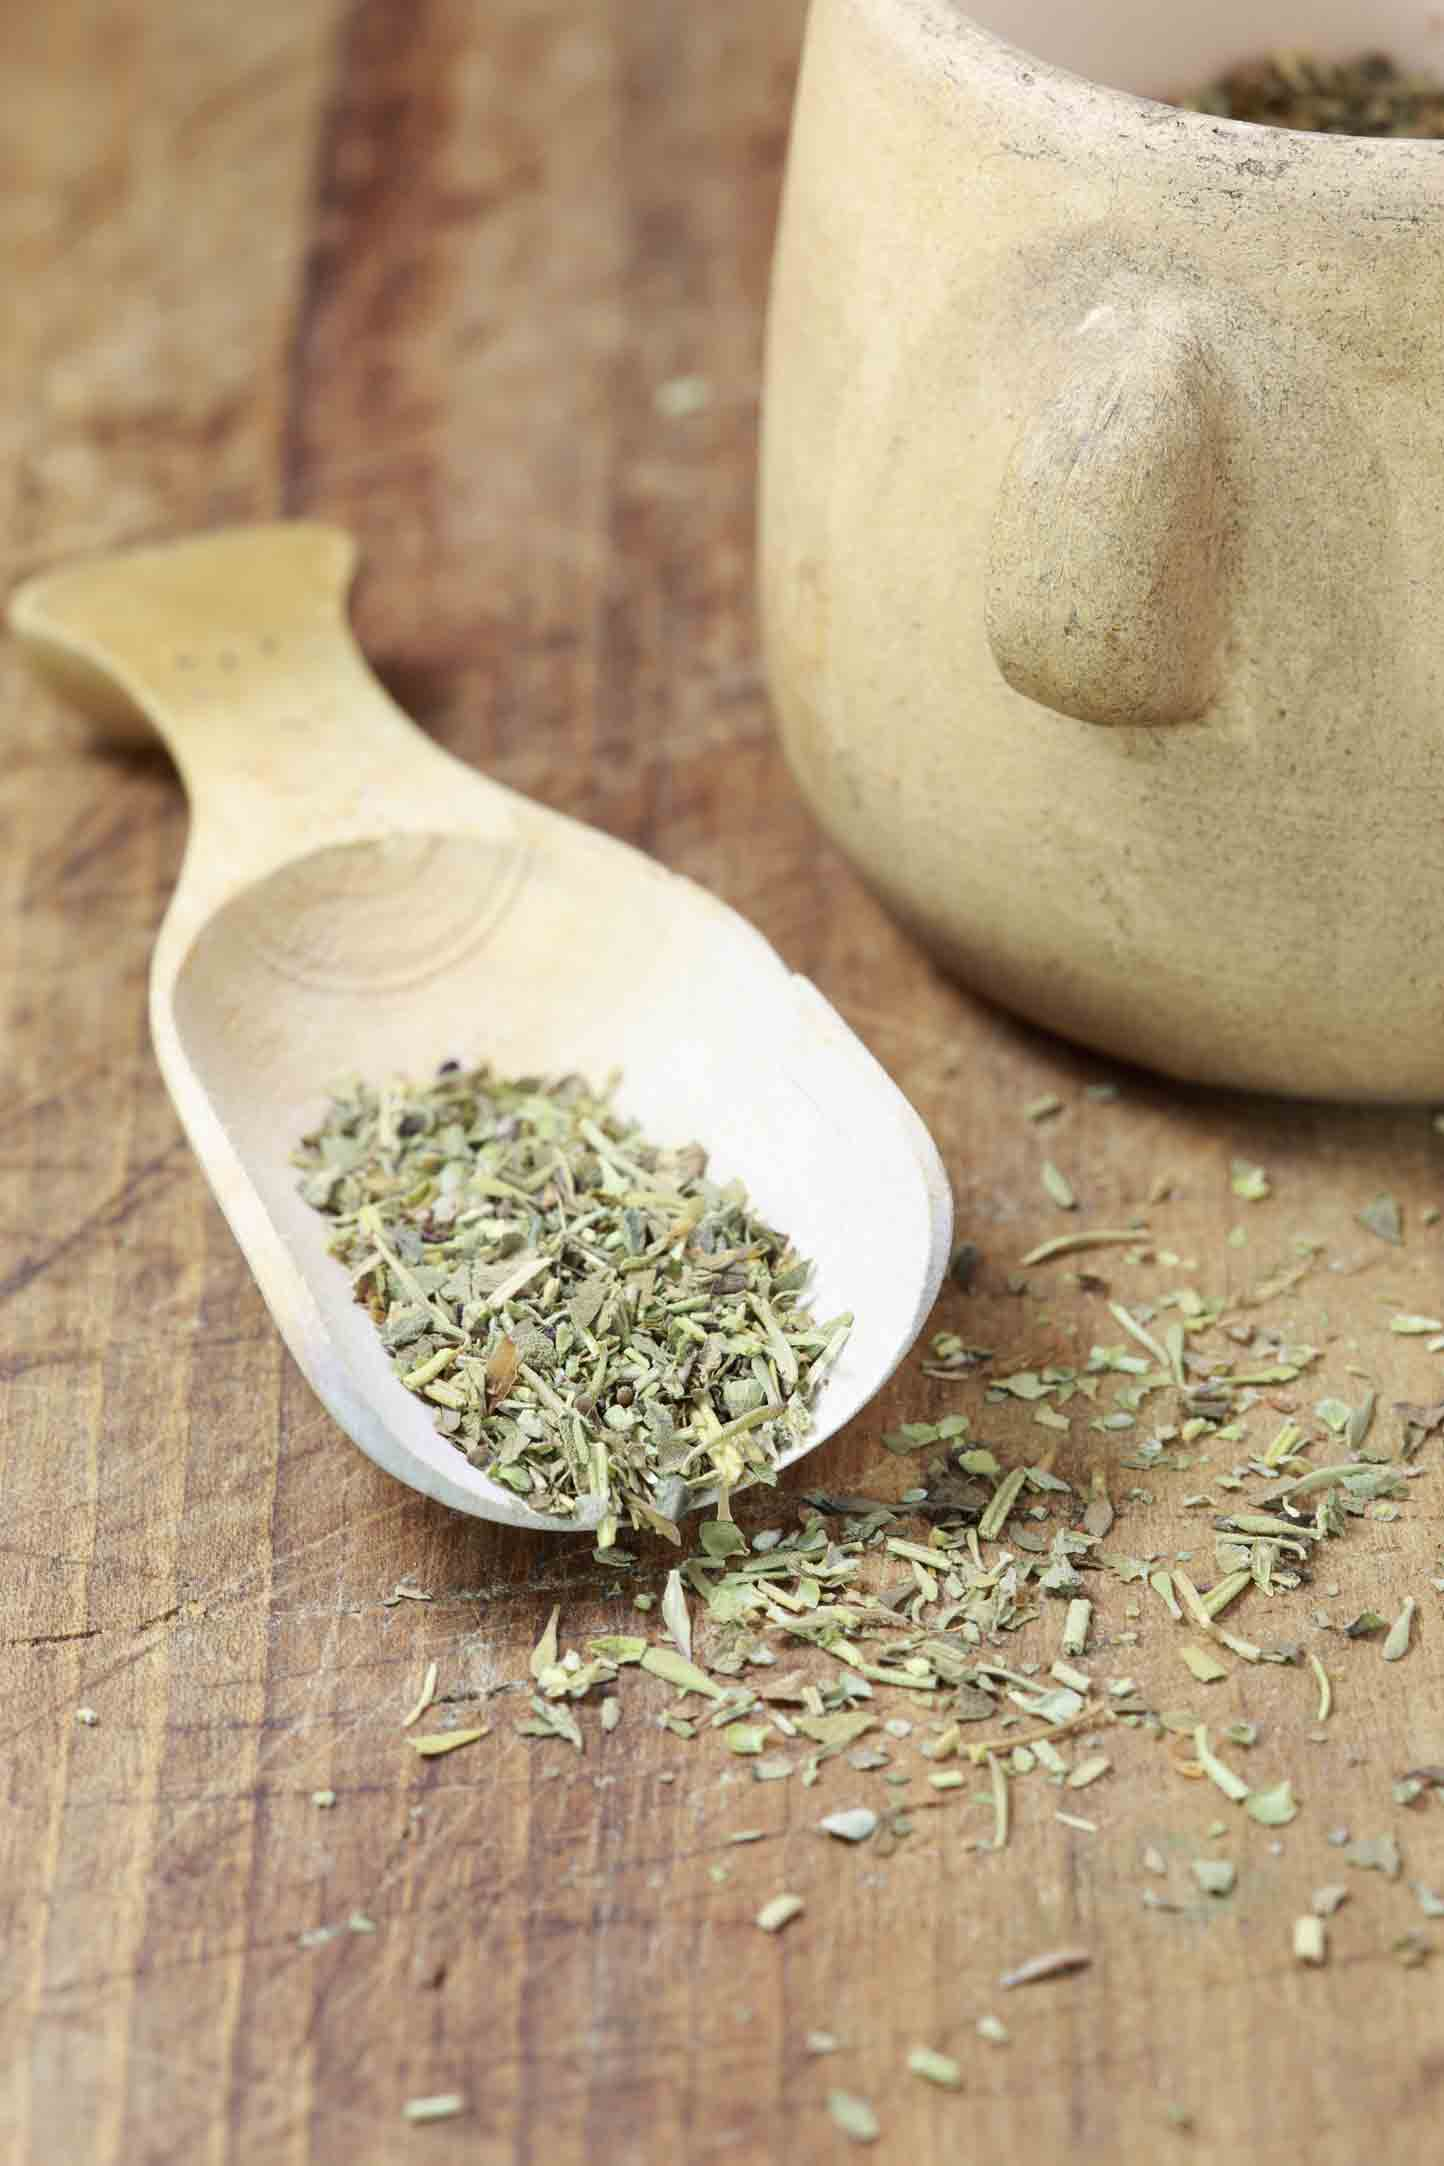 Wooden spoon and herbs de provence